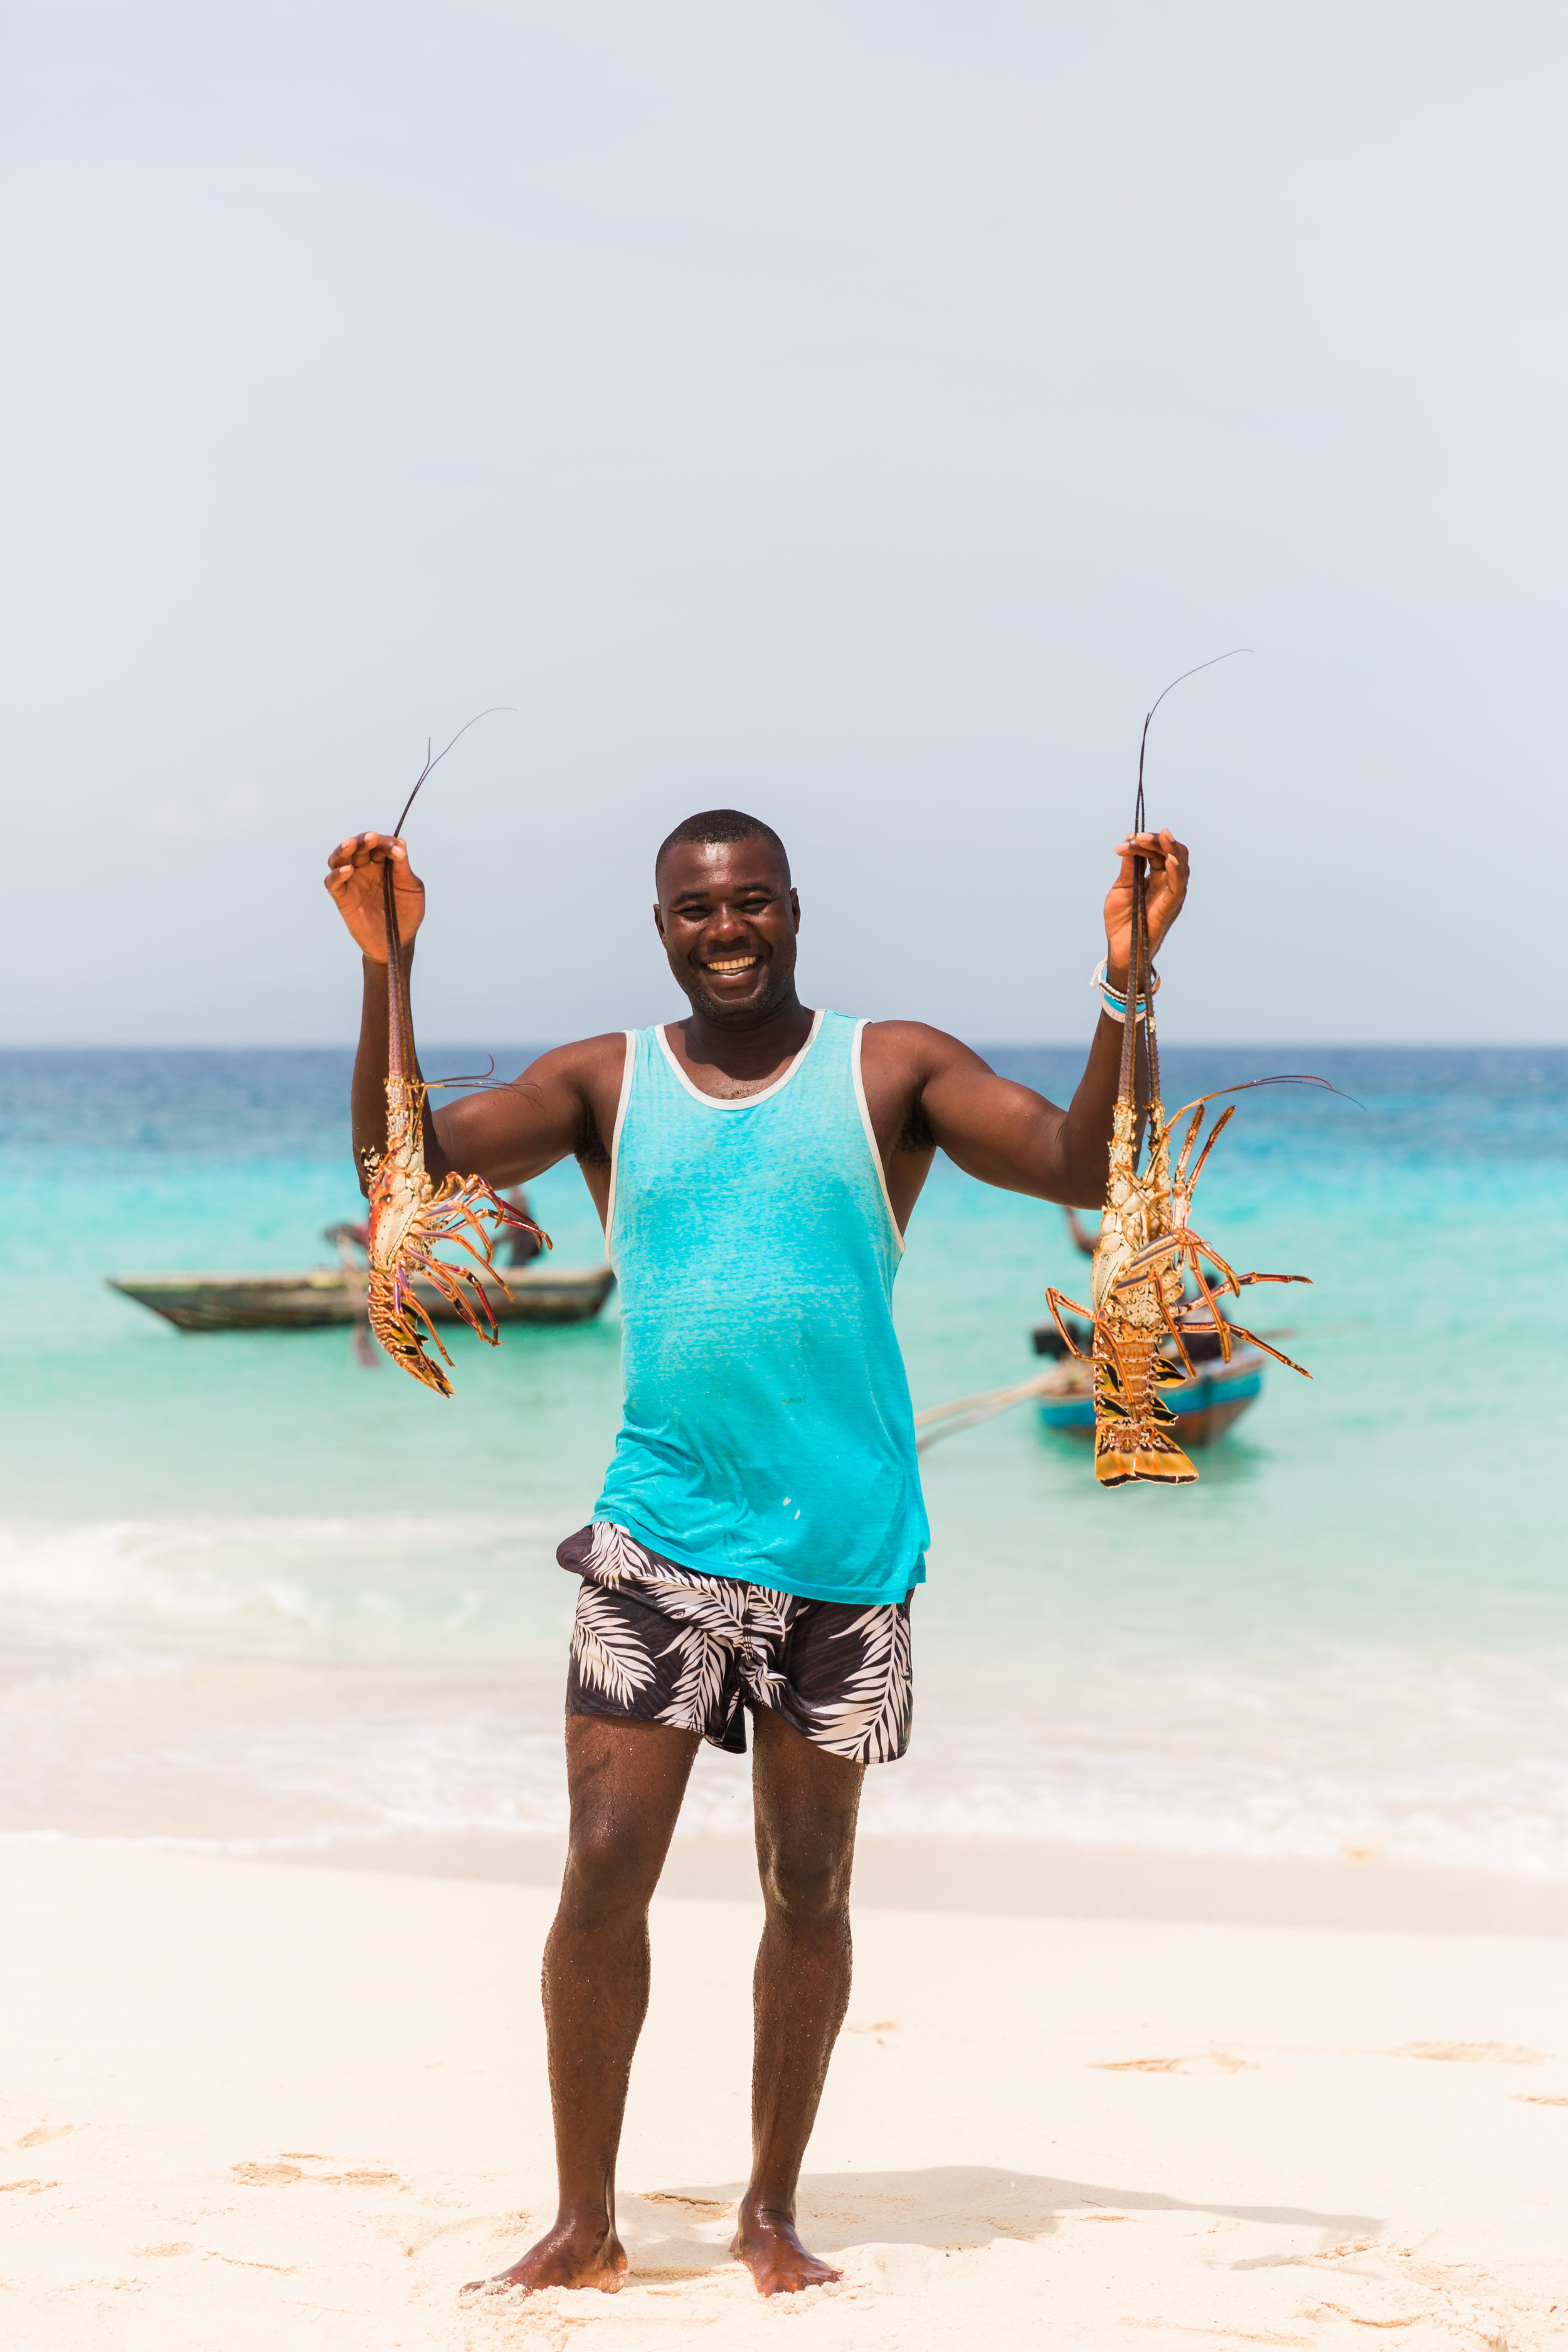 Fresh Lobster, KIN TRAVEL, Everyday Pursuits, Valorie Darling Photography